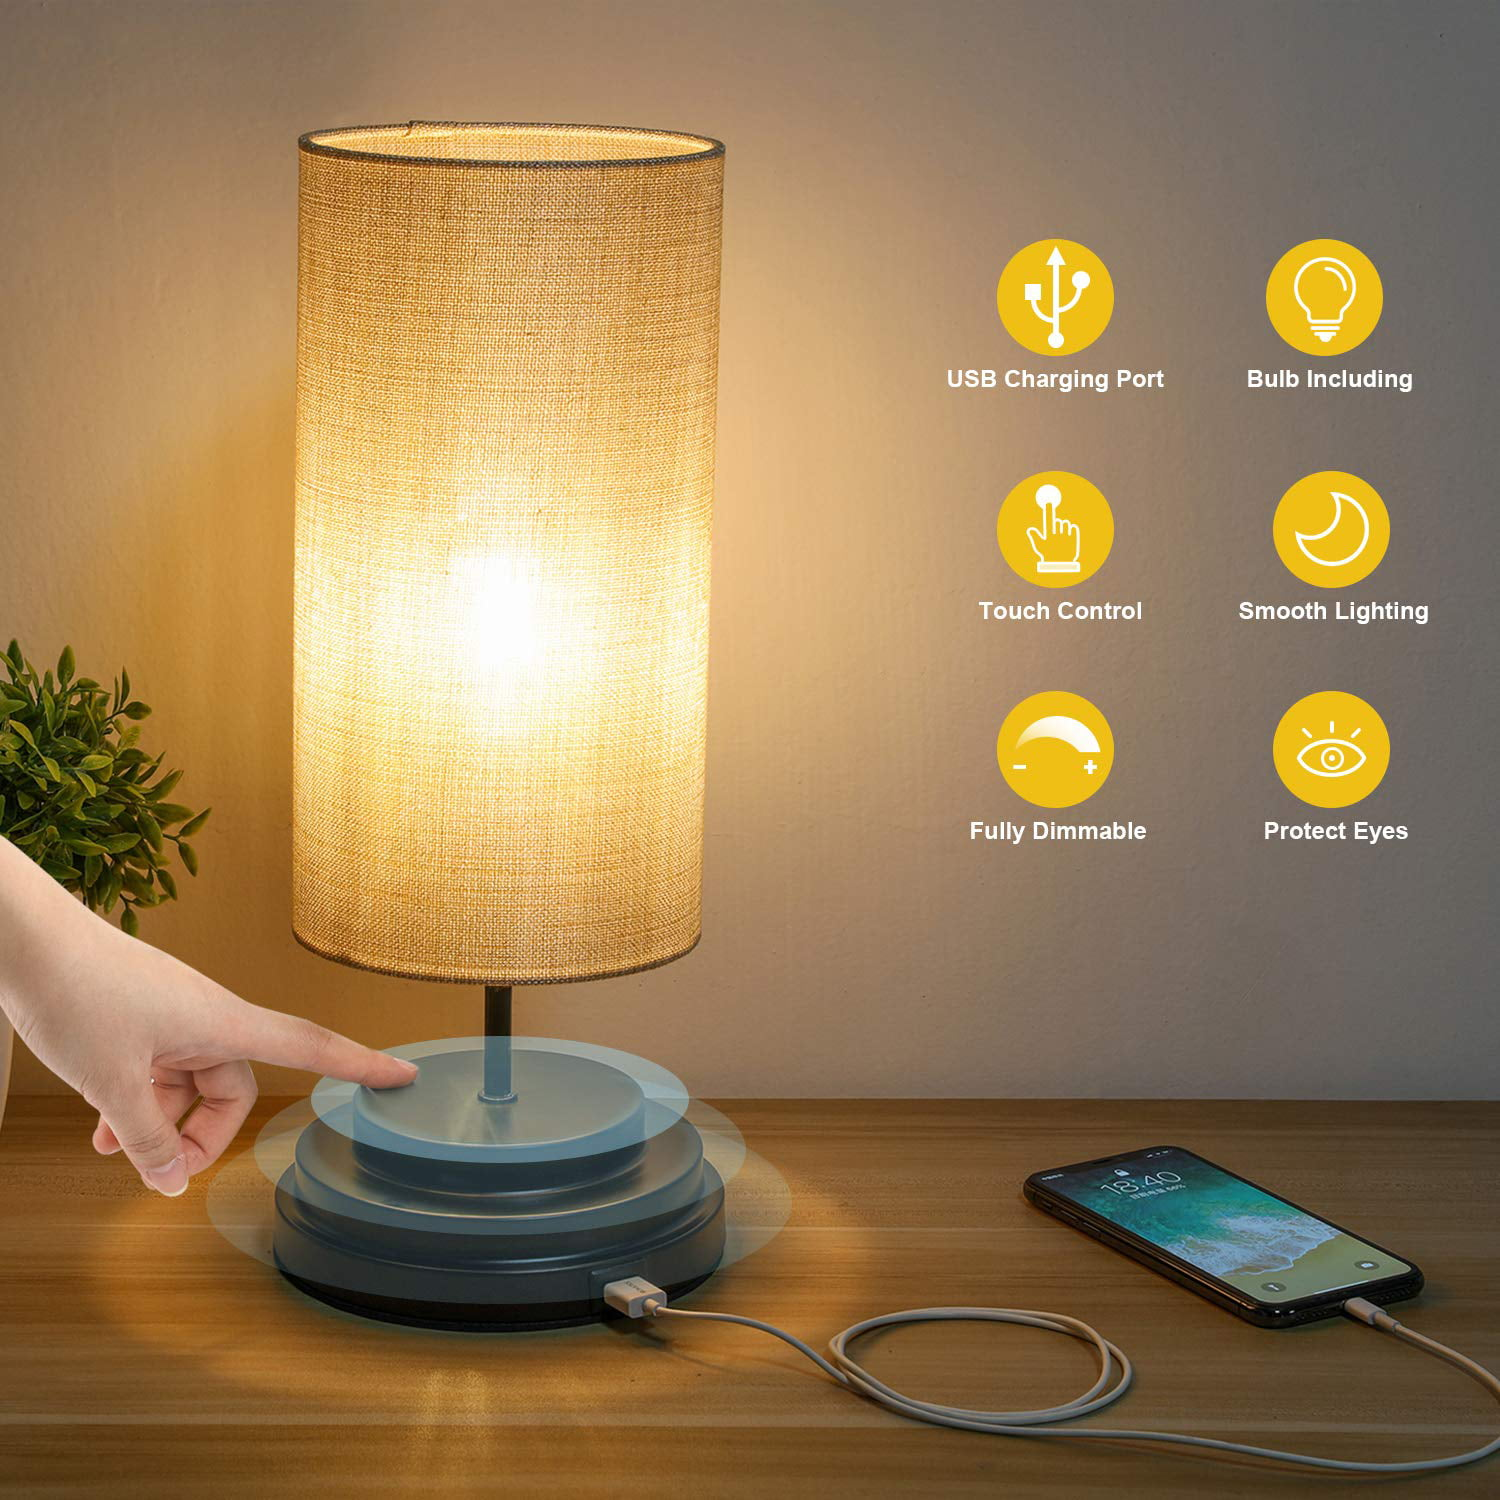 Kohree Touch Control Bedside Led Table Lamp Fully Dimmable Usb Port Desk Lamp Dimmer Modern Nightstand Lamp With Square Fabric Lamp Shade For Bedroom Living Room Office 4w 2700k Led Bulb Included